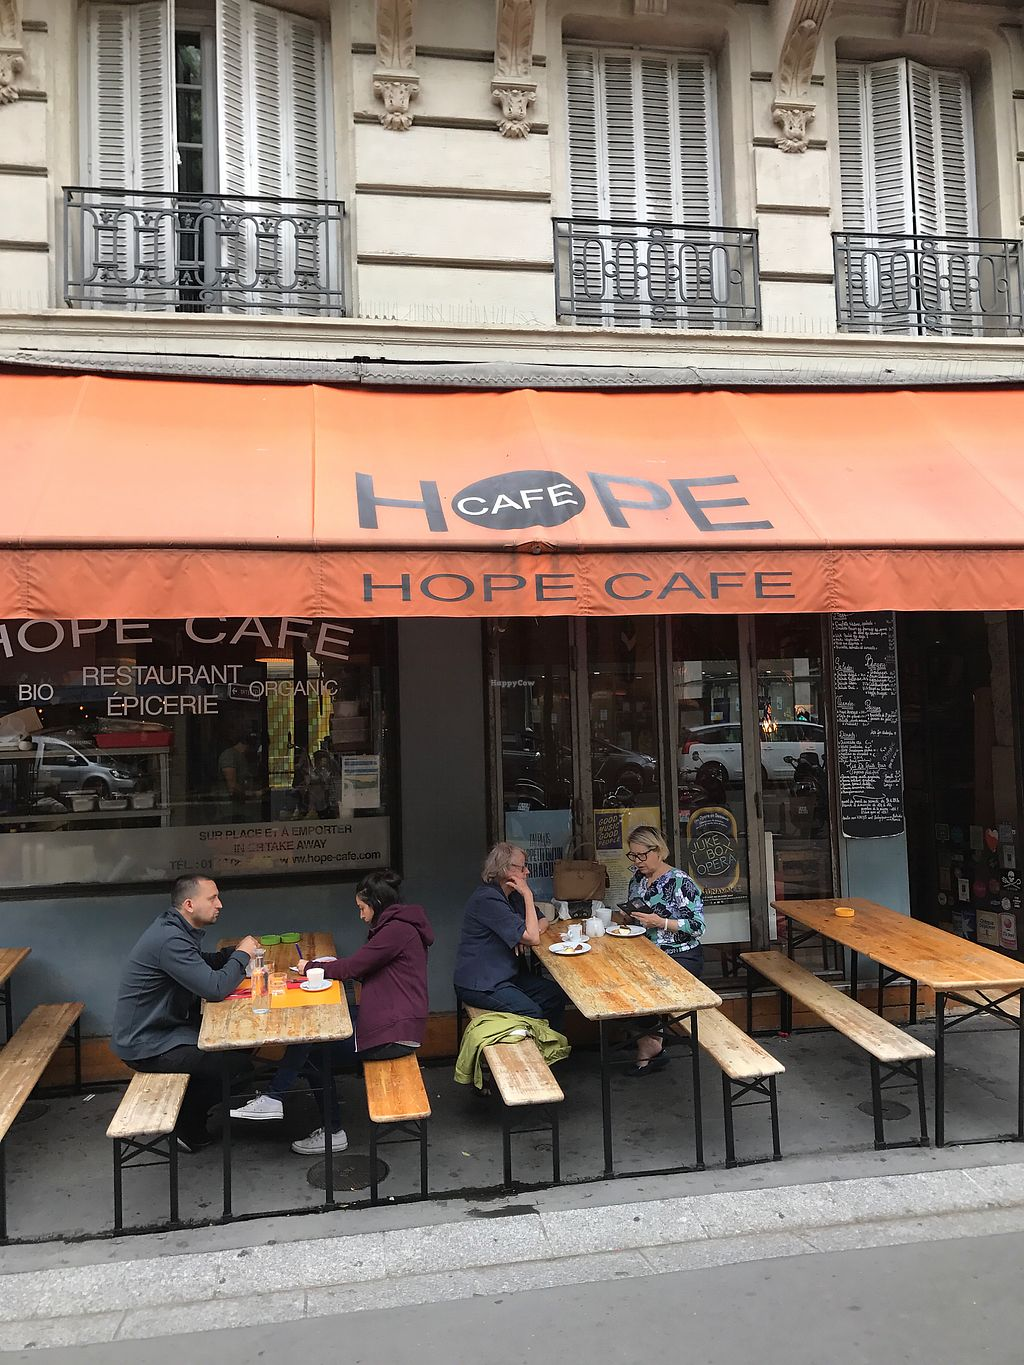 "Photo of Hope Cafe  by <a href=""/members/profile/ClareMitchell"">ClareMitchell</a> <br/>shop front, diamond in the ruff <br/> August 17, 2017  - <a href='/contact/abuse/image/70144/293769'>Report</a>"